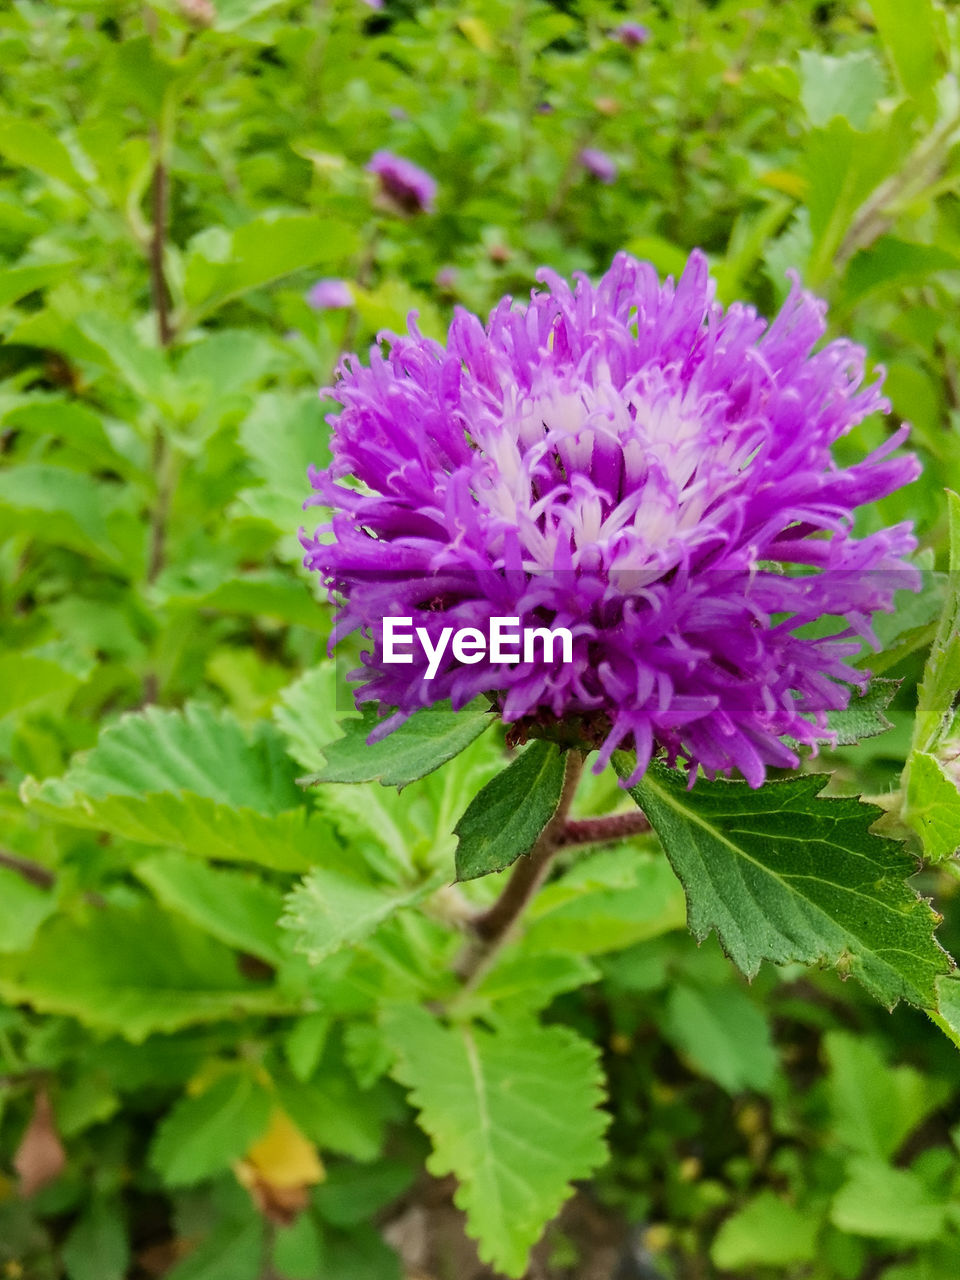 flower, flowering plant, plant, beauty in nature, freshness, vulnerability, fragility, growth, plant part, leaf, close-up, petal, inflorescence, purple, nature, flower head, green color, day, pink color, focus on foreground, no people, outdoors